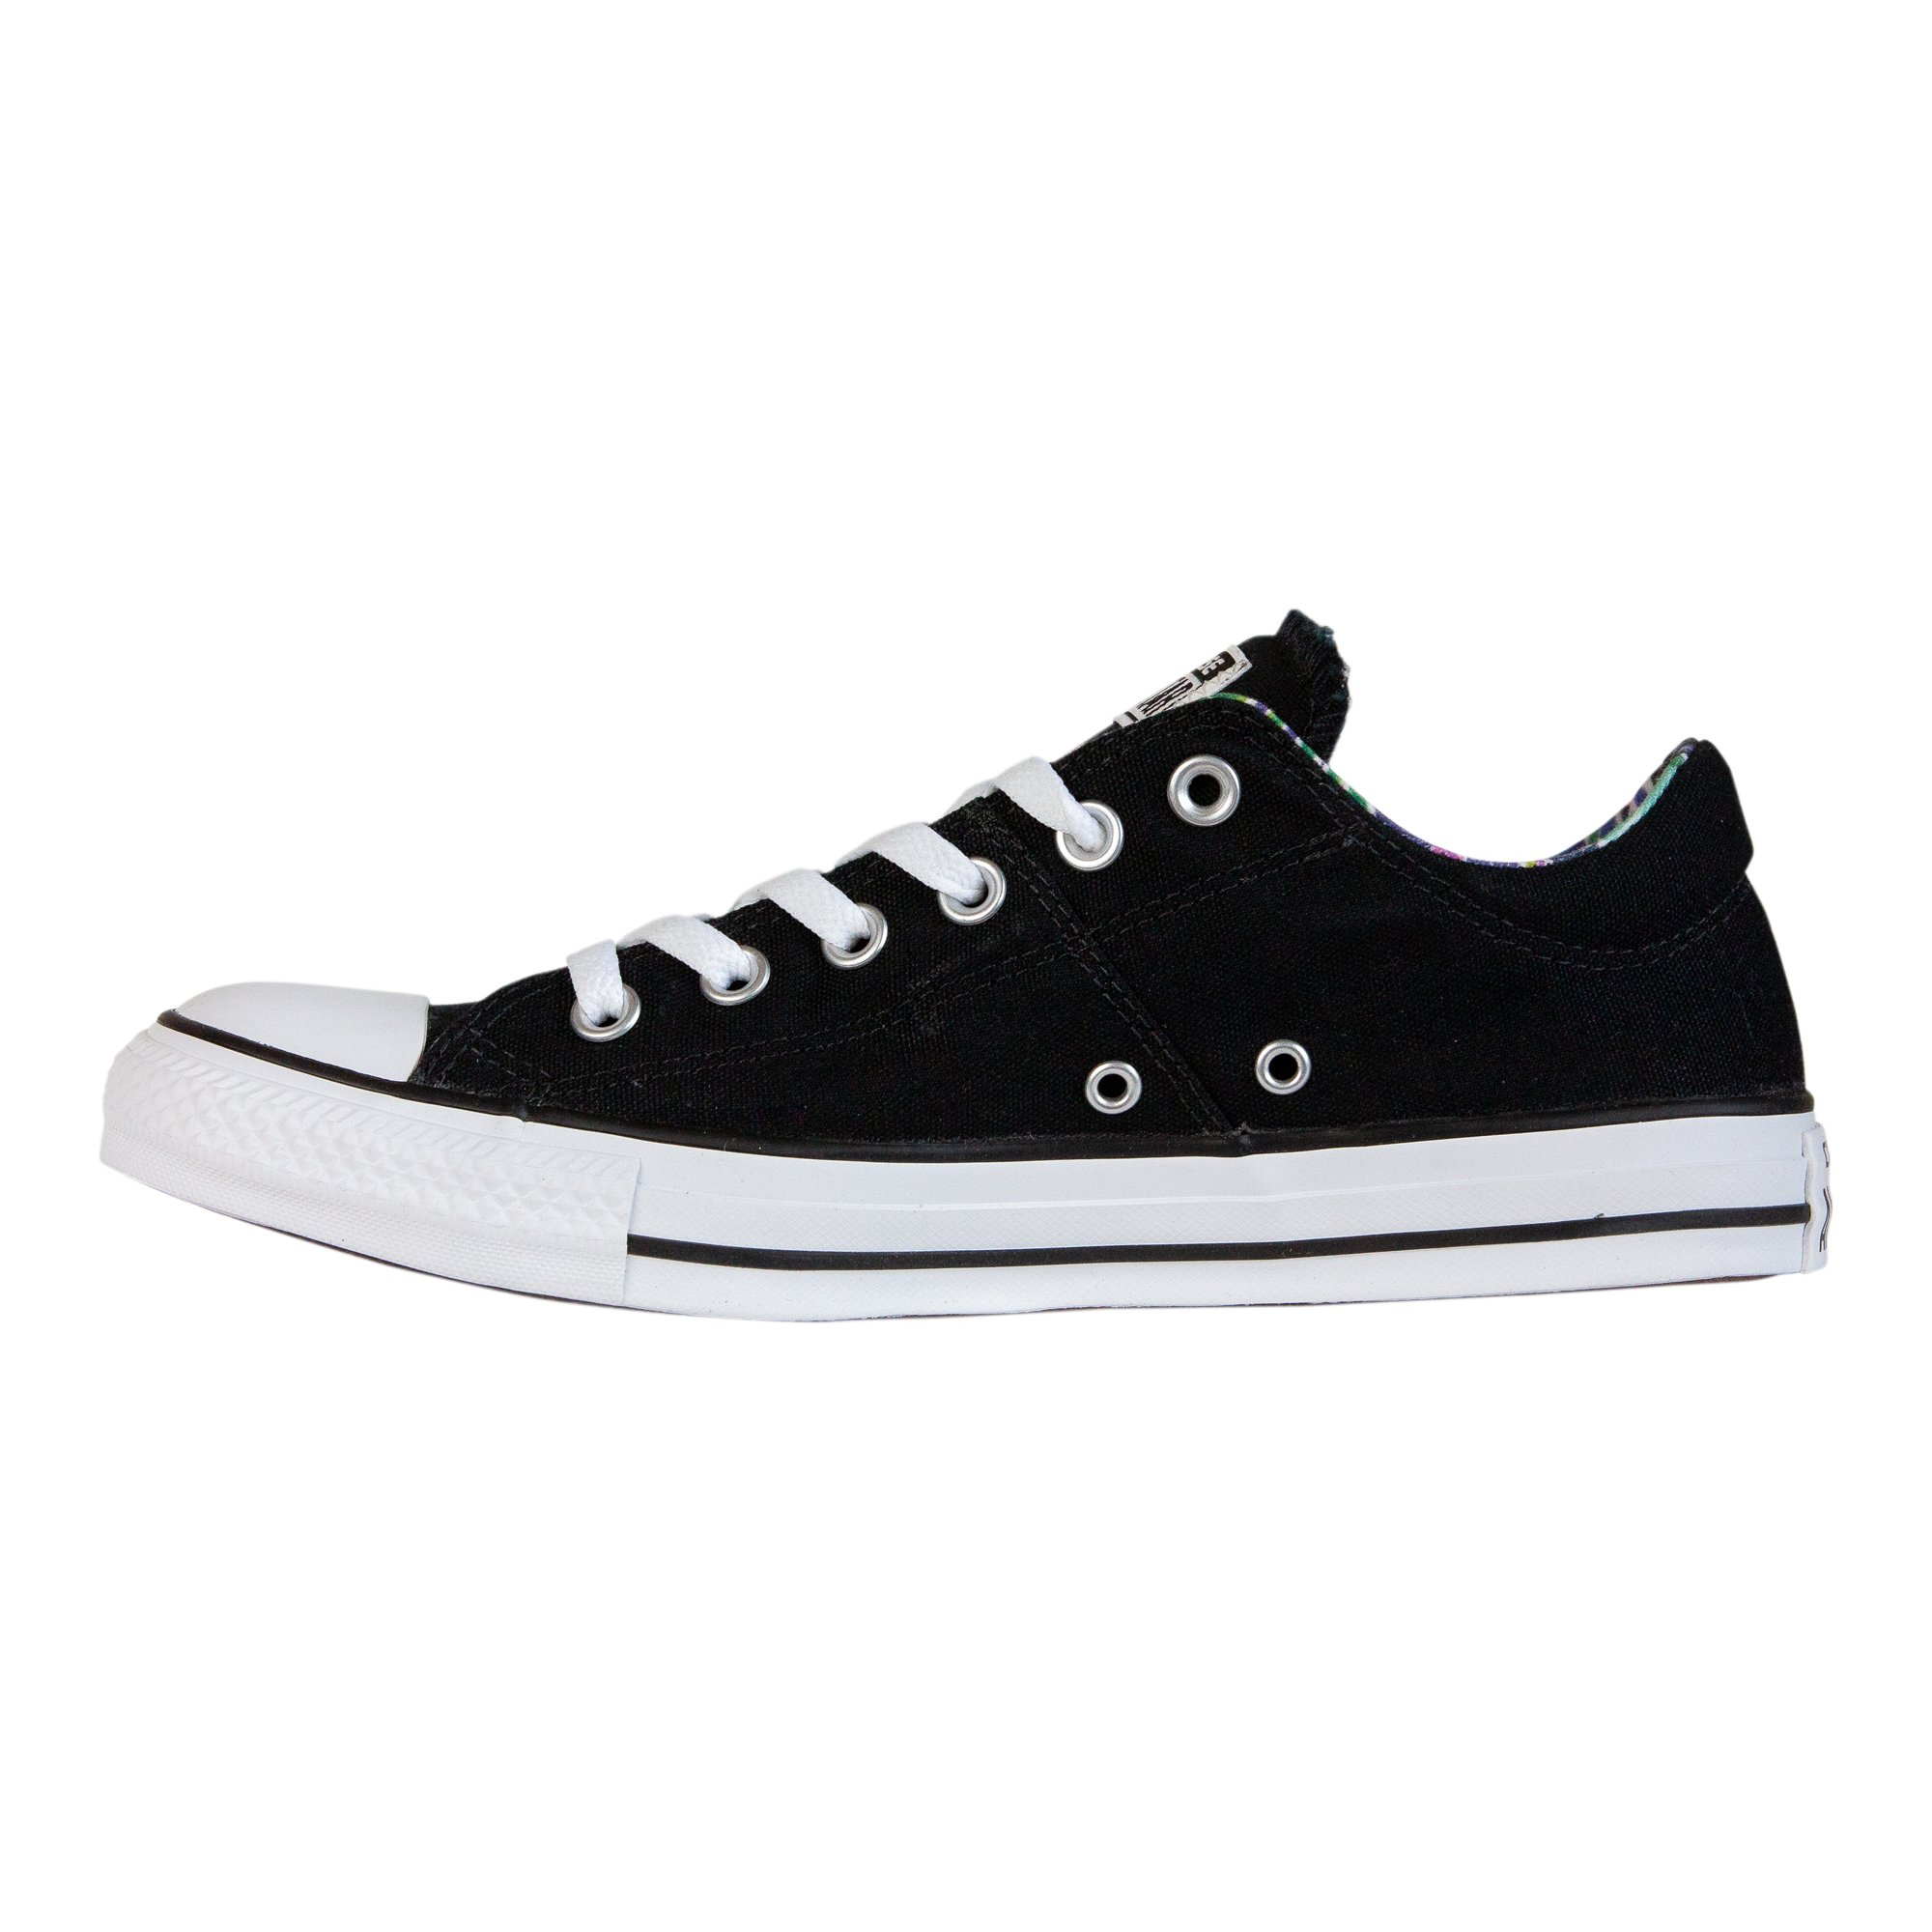 Converse Women's Chuck Taylor All Star Madison Sneakers, Black/White/White, 8 B(M) US by Converse (Image #2)